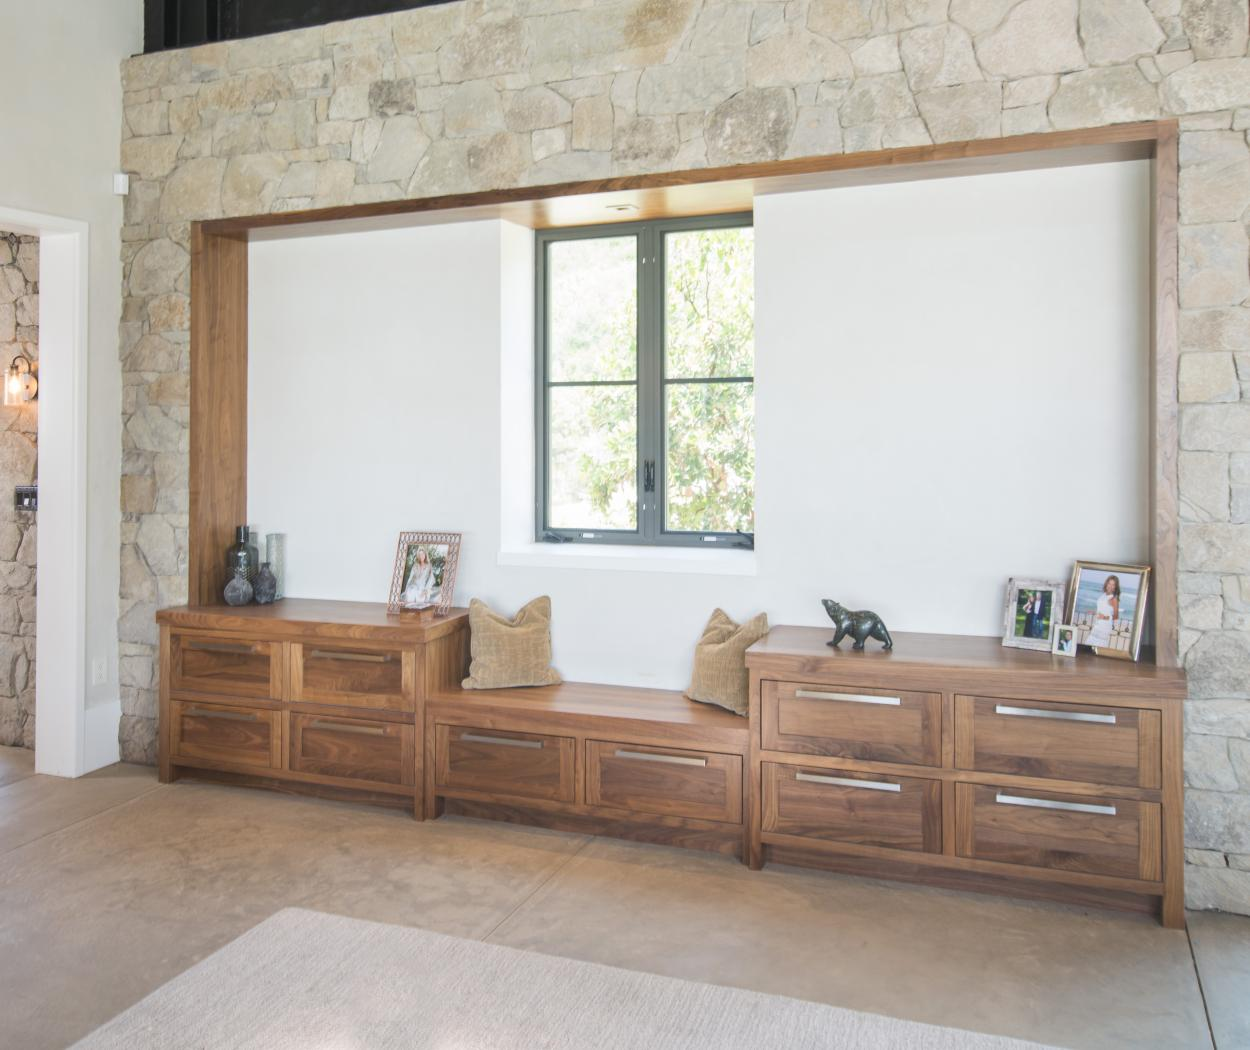 Beautiful Transitional Walnut Living Room Built-Ins with Bench Seat